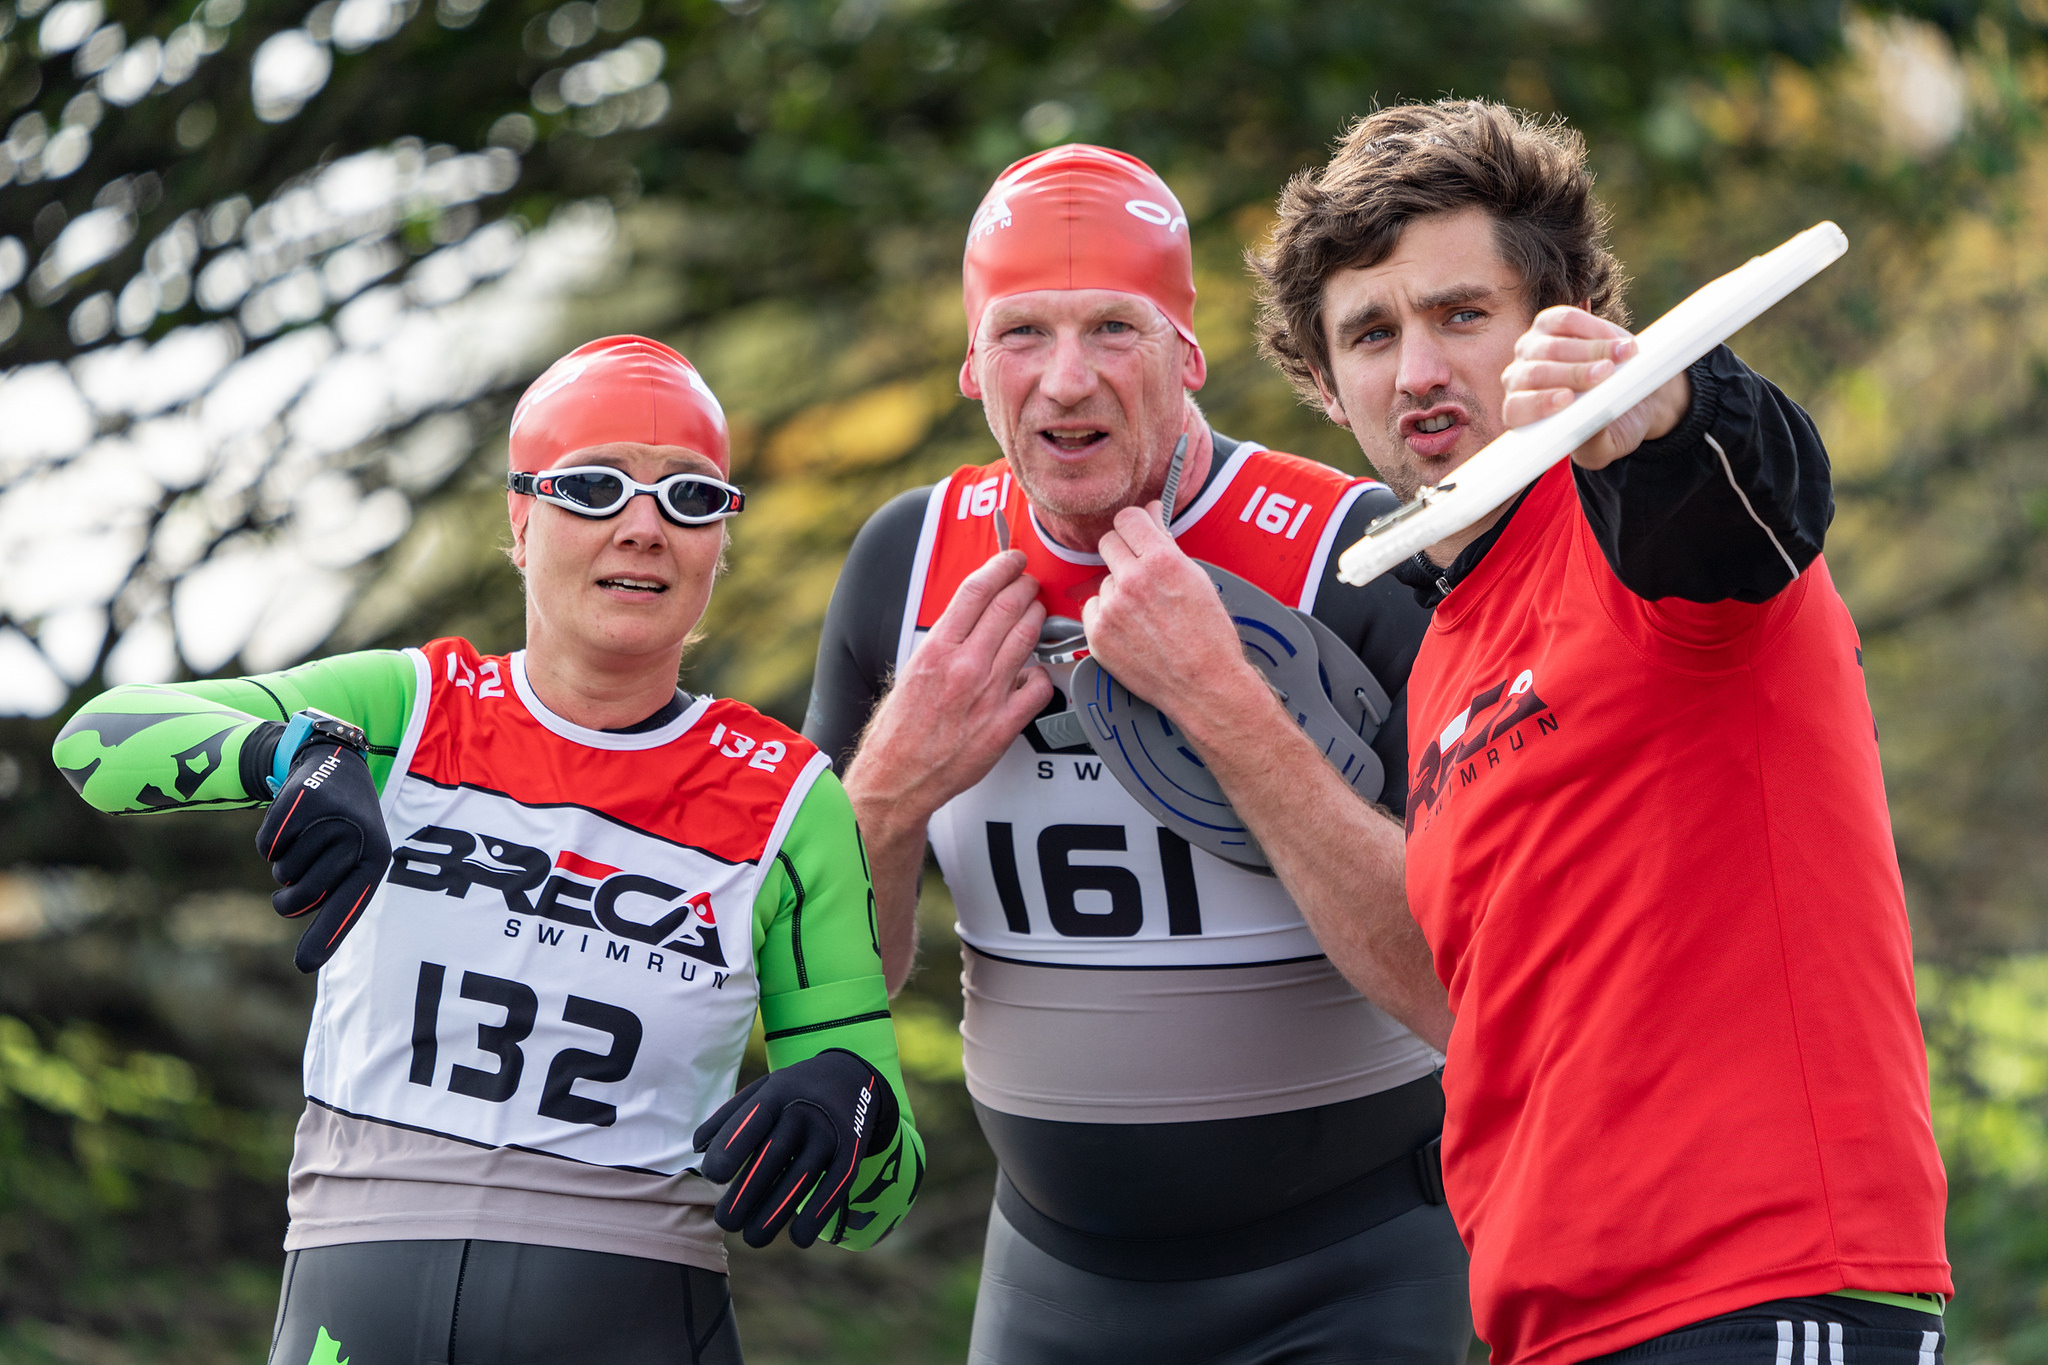 Join the Breca Coniston Team - 5th & 6th October 2019 -